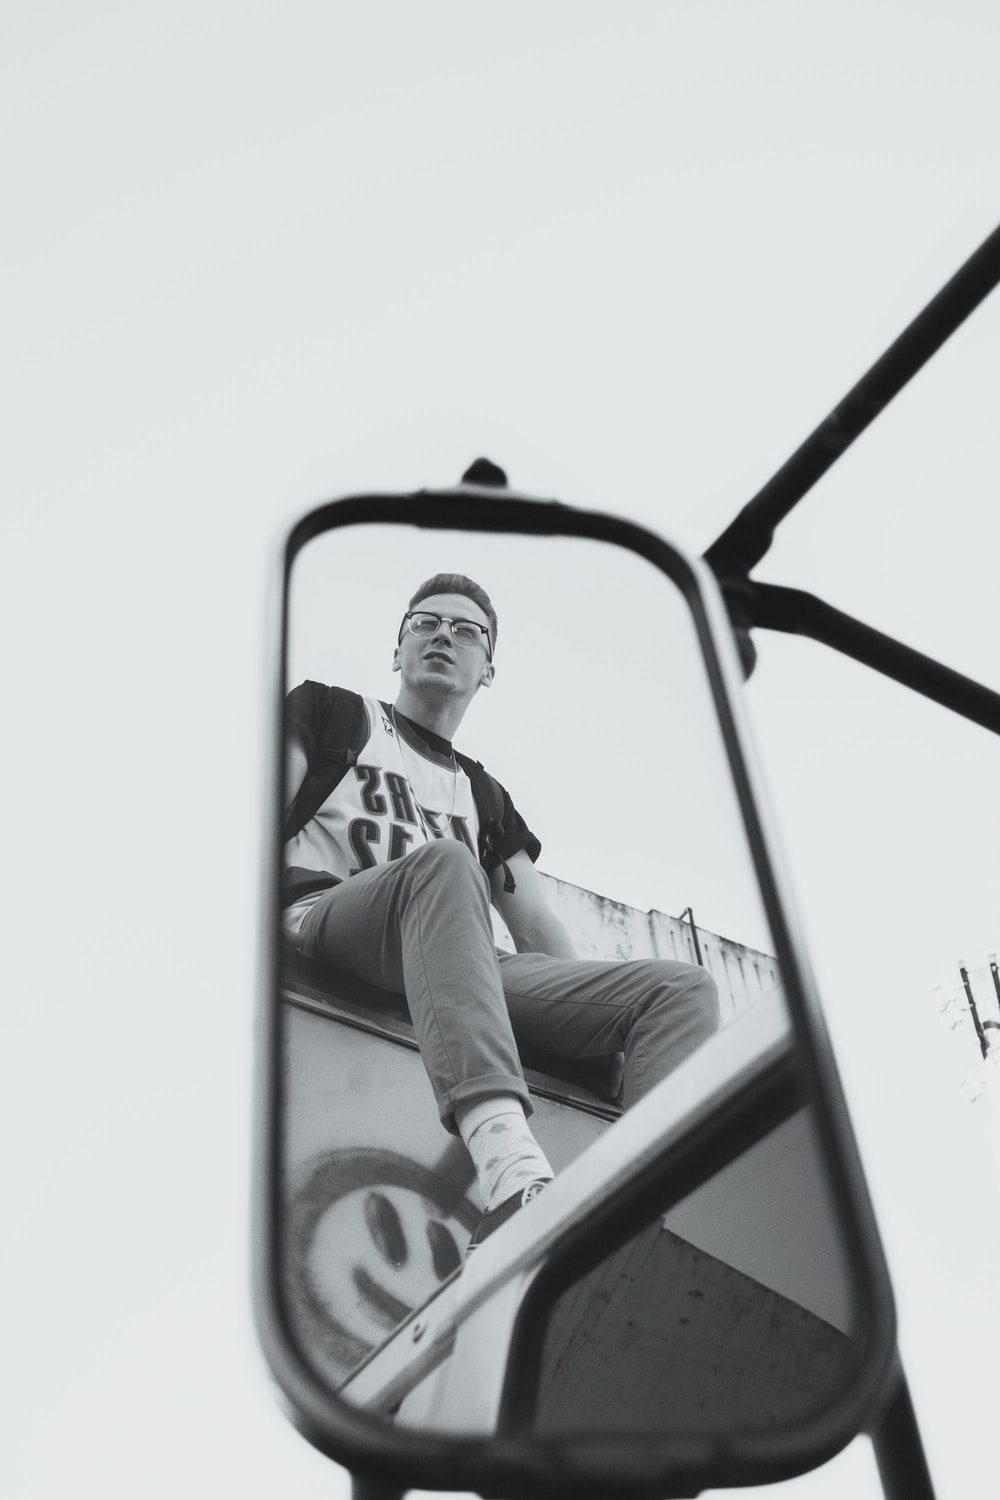 grayscaled photo of reflection of man in side mirror